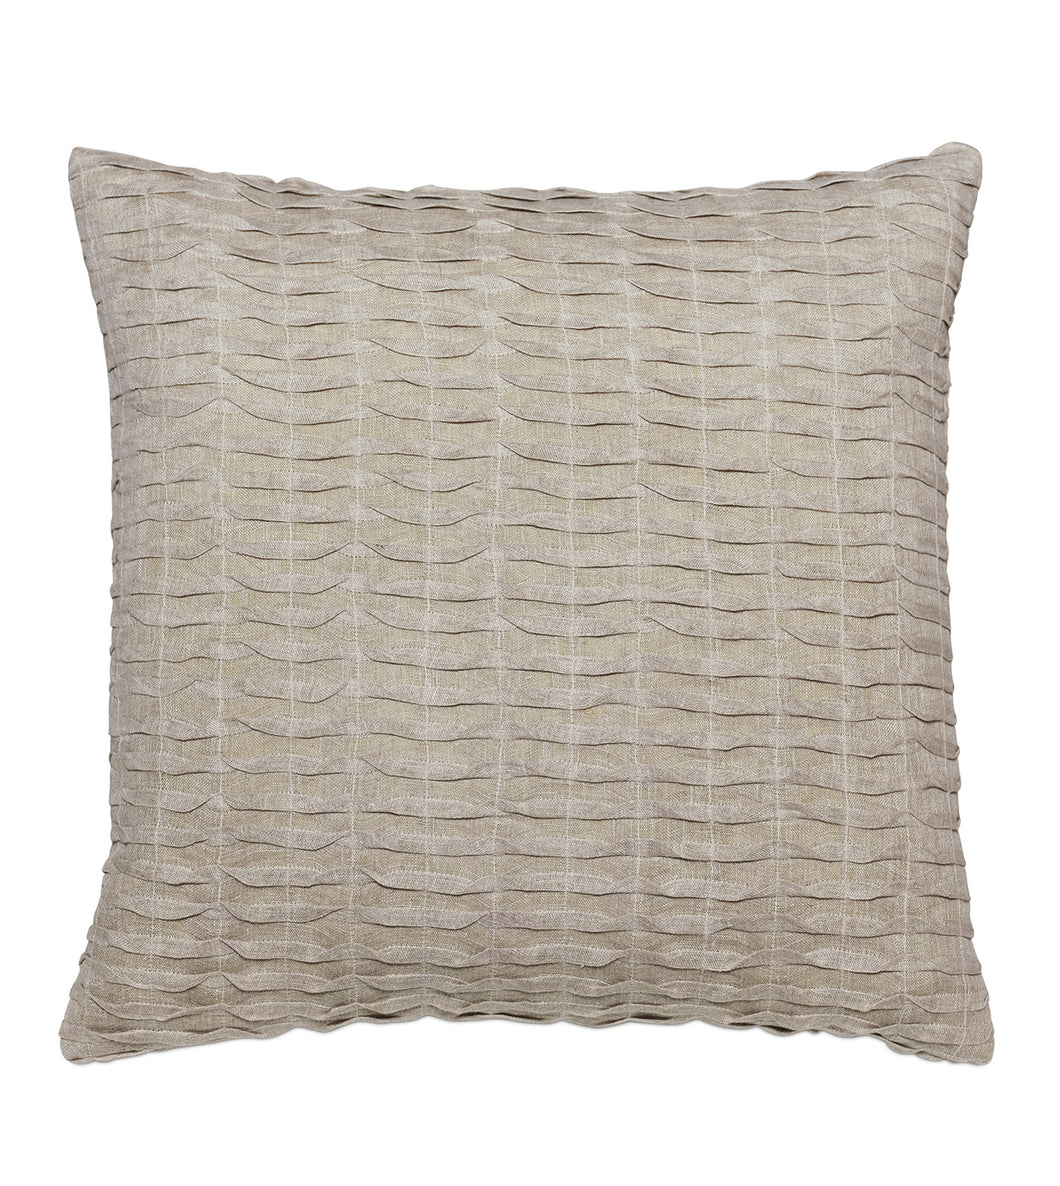 Yearling Flax Decorative Pillow